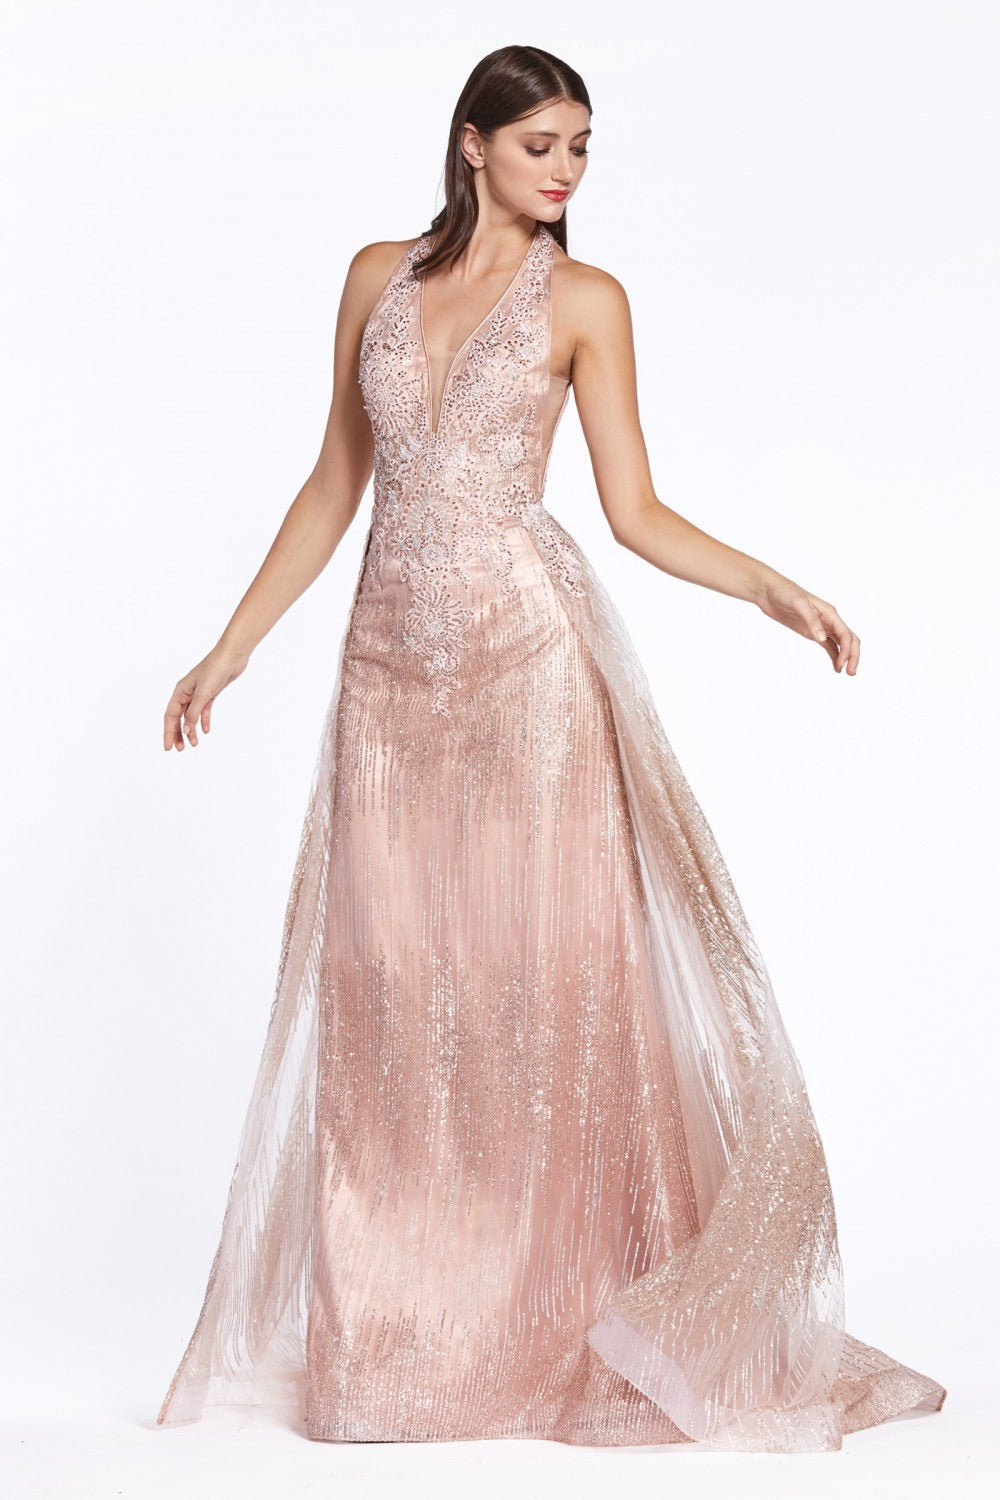 Cinderella Divine CW767 Evening Dress - CYC Boutique